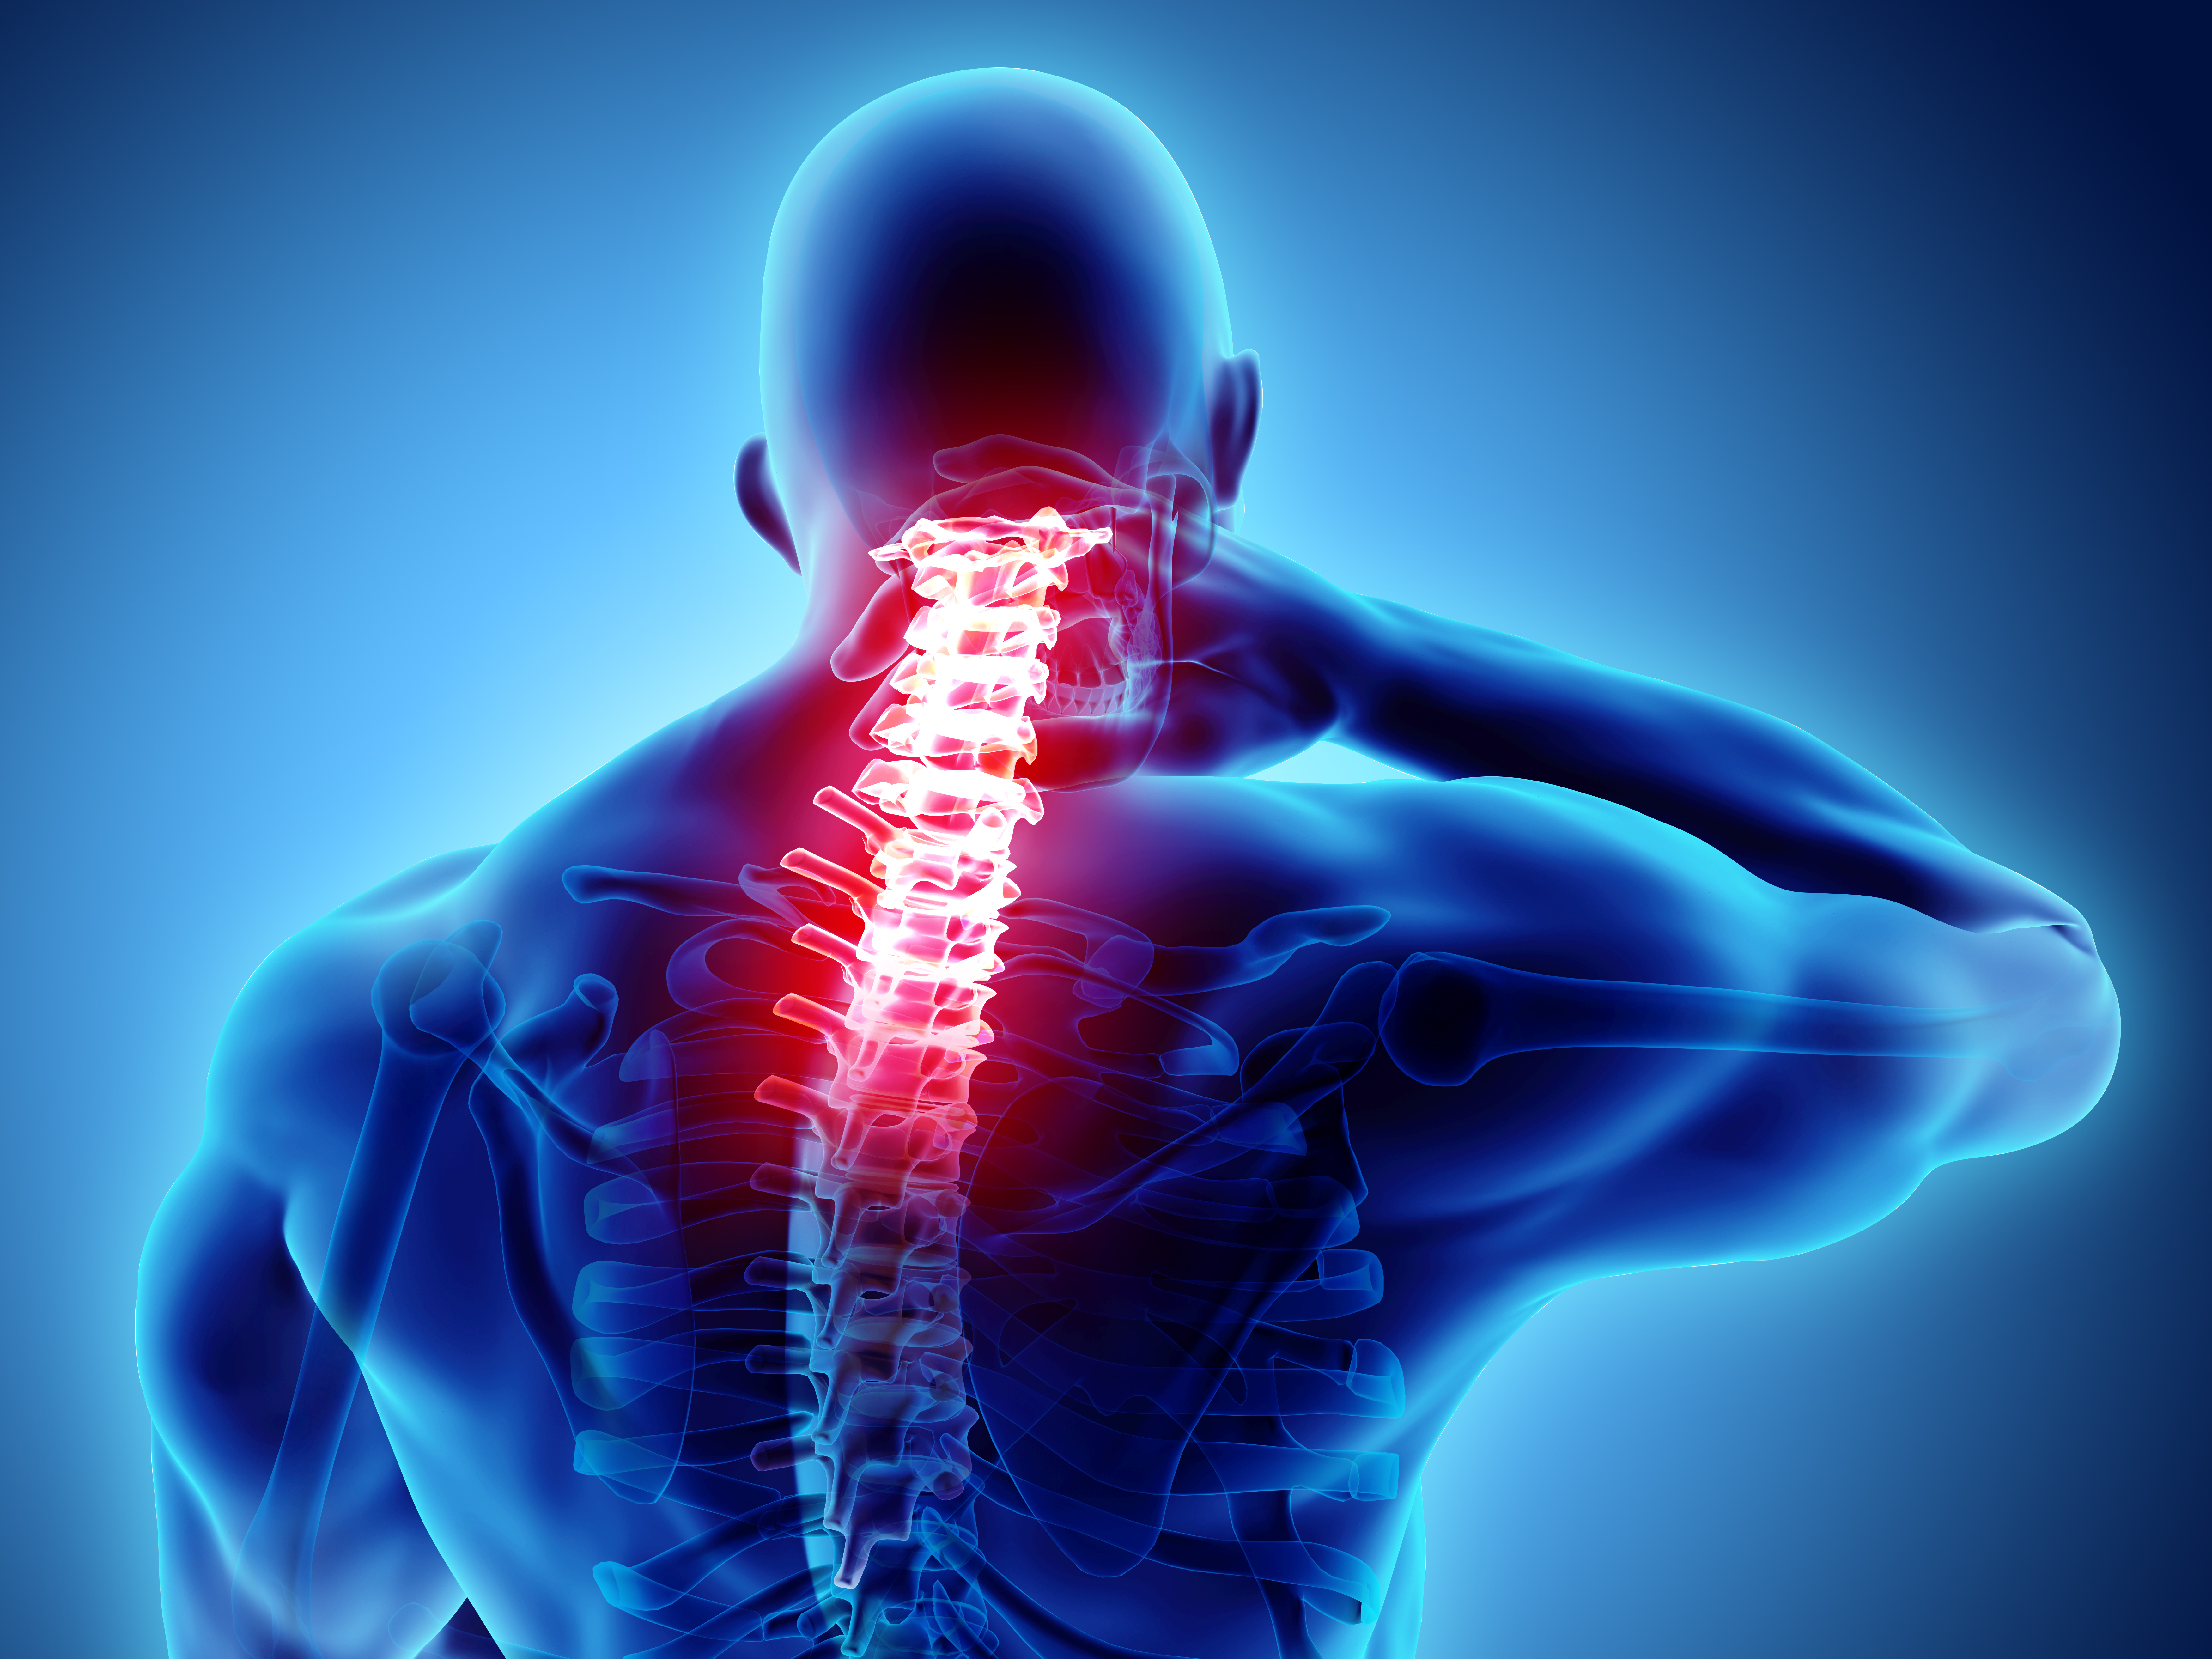 Highlighted top of spine where neck pain occurs.